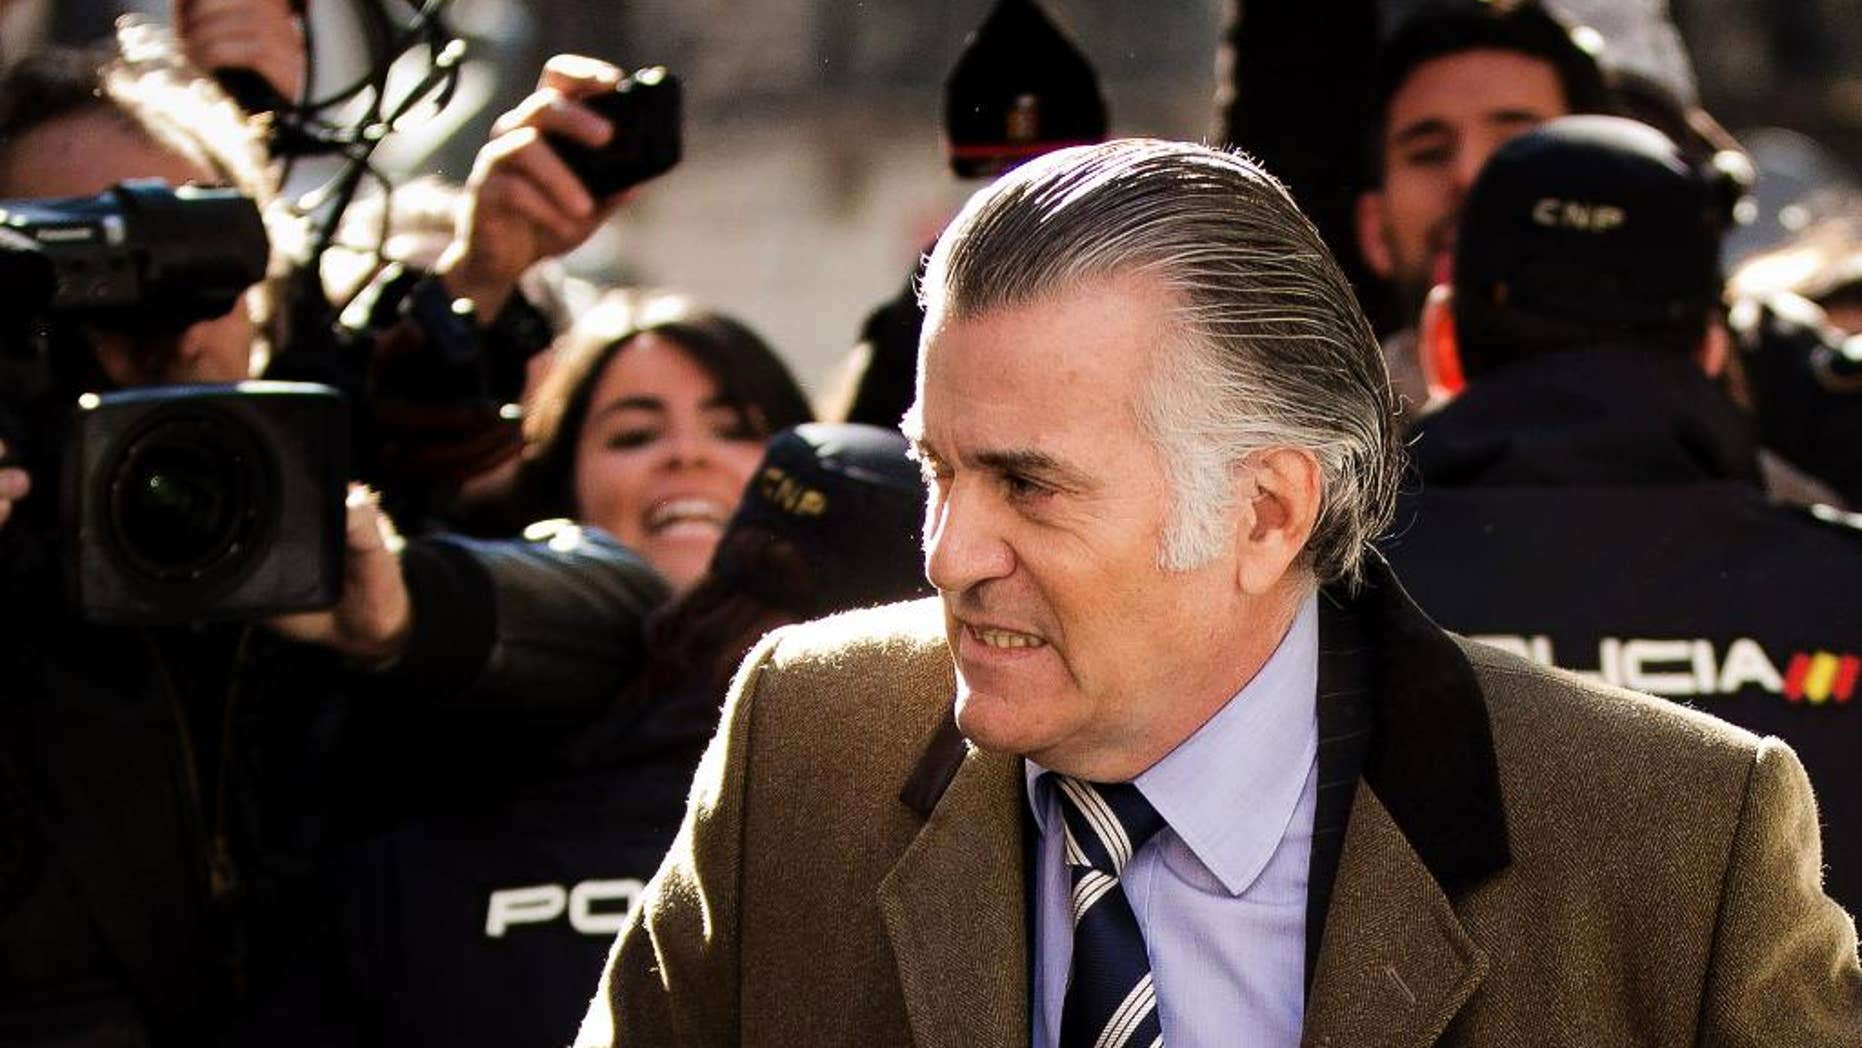 FILE -  In this Feb. 6, 2013 file photo, former Popular Party treasurer Luis Barcenas arrives to the anti-corruption prosecuting office in Madrid. Bail has been set for a former ruling party finance chief jailed since 2013 amid accusations he ran a slush fund that benefited top party officials, including Spanish Prime Minister Mariano Rajoy. A National Court statement said Tuesday, Jan. 20, 2015 that judges set bail for Luis Barcenas at euro 200,000 ($232,000) after previously denying his requests because he had been considered a flight risk. Barcenas has said he made regular payoffs to Popular Party officials including Rajoy. The prime minister and the party deny his claims. (AP Photo/Daniel Ochoa de Olza, File)